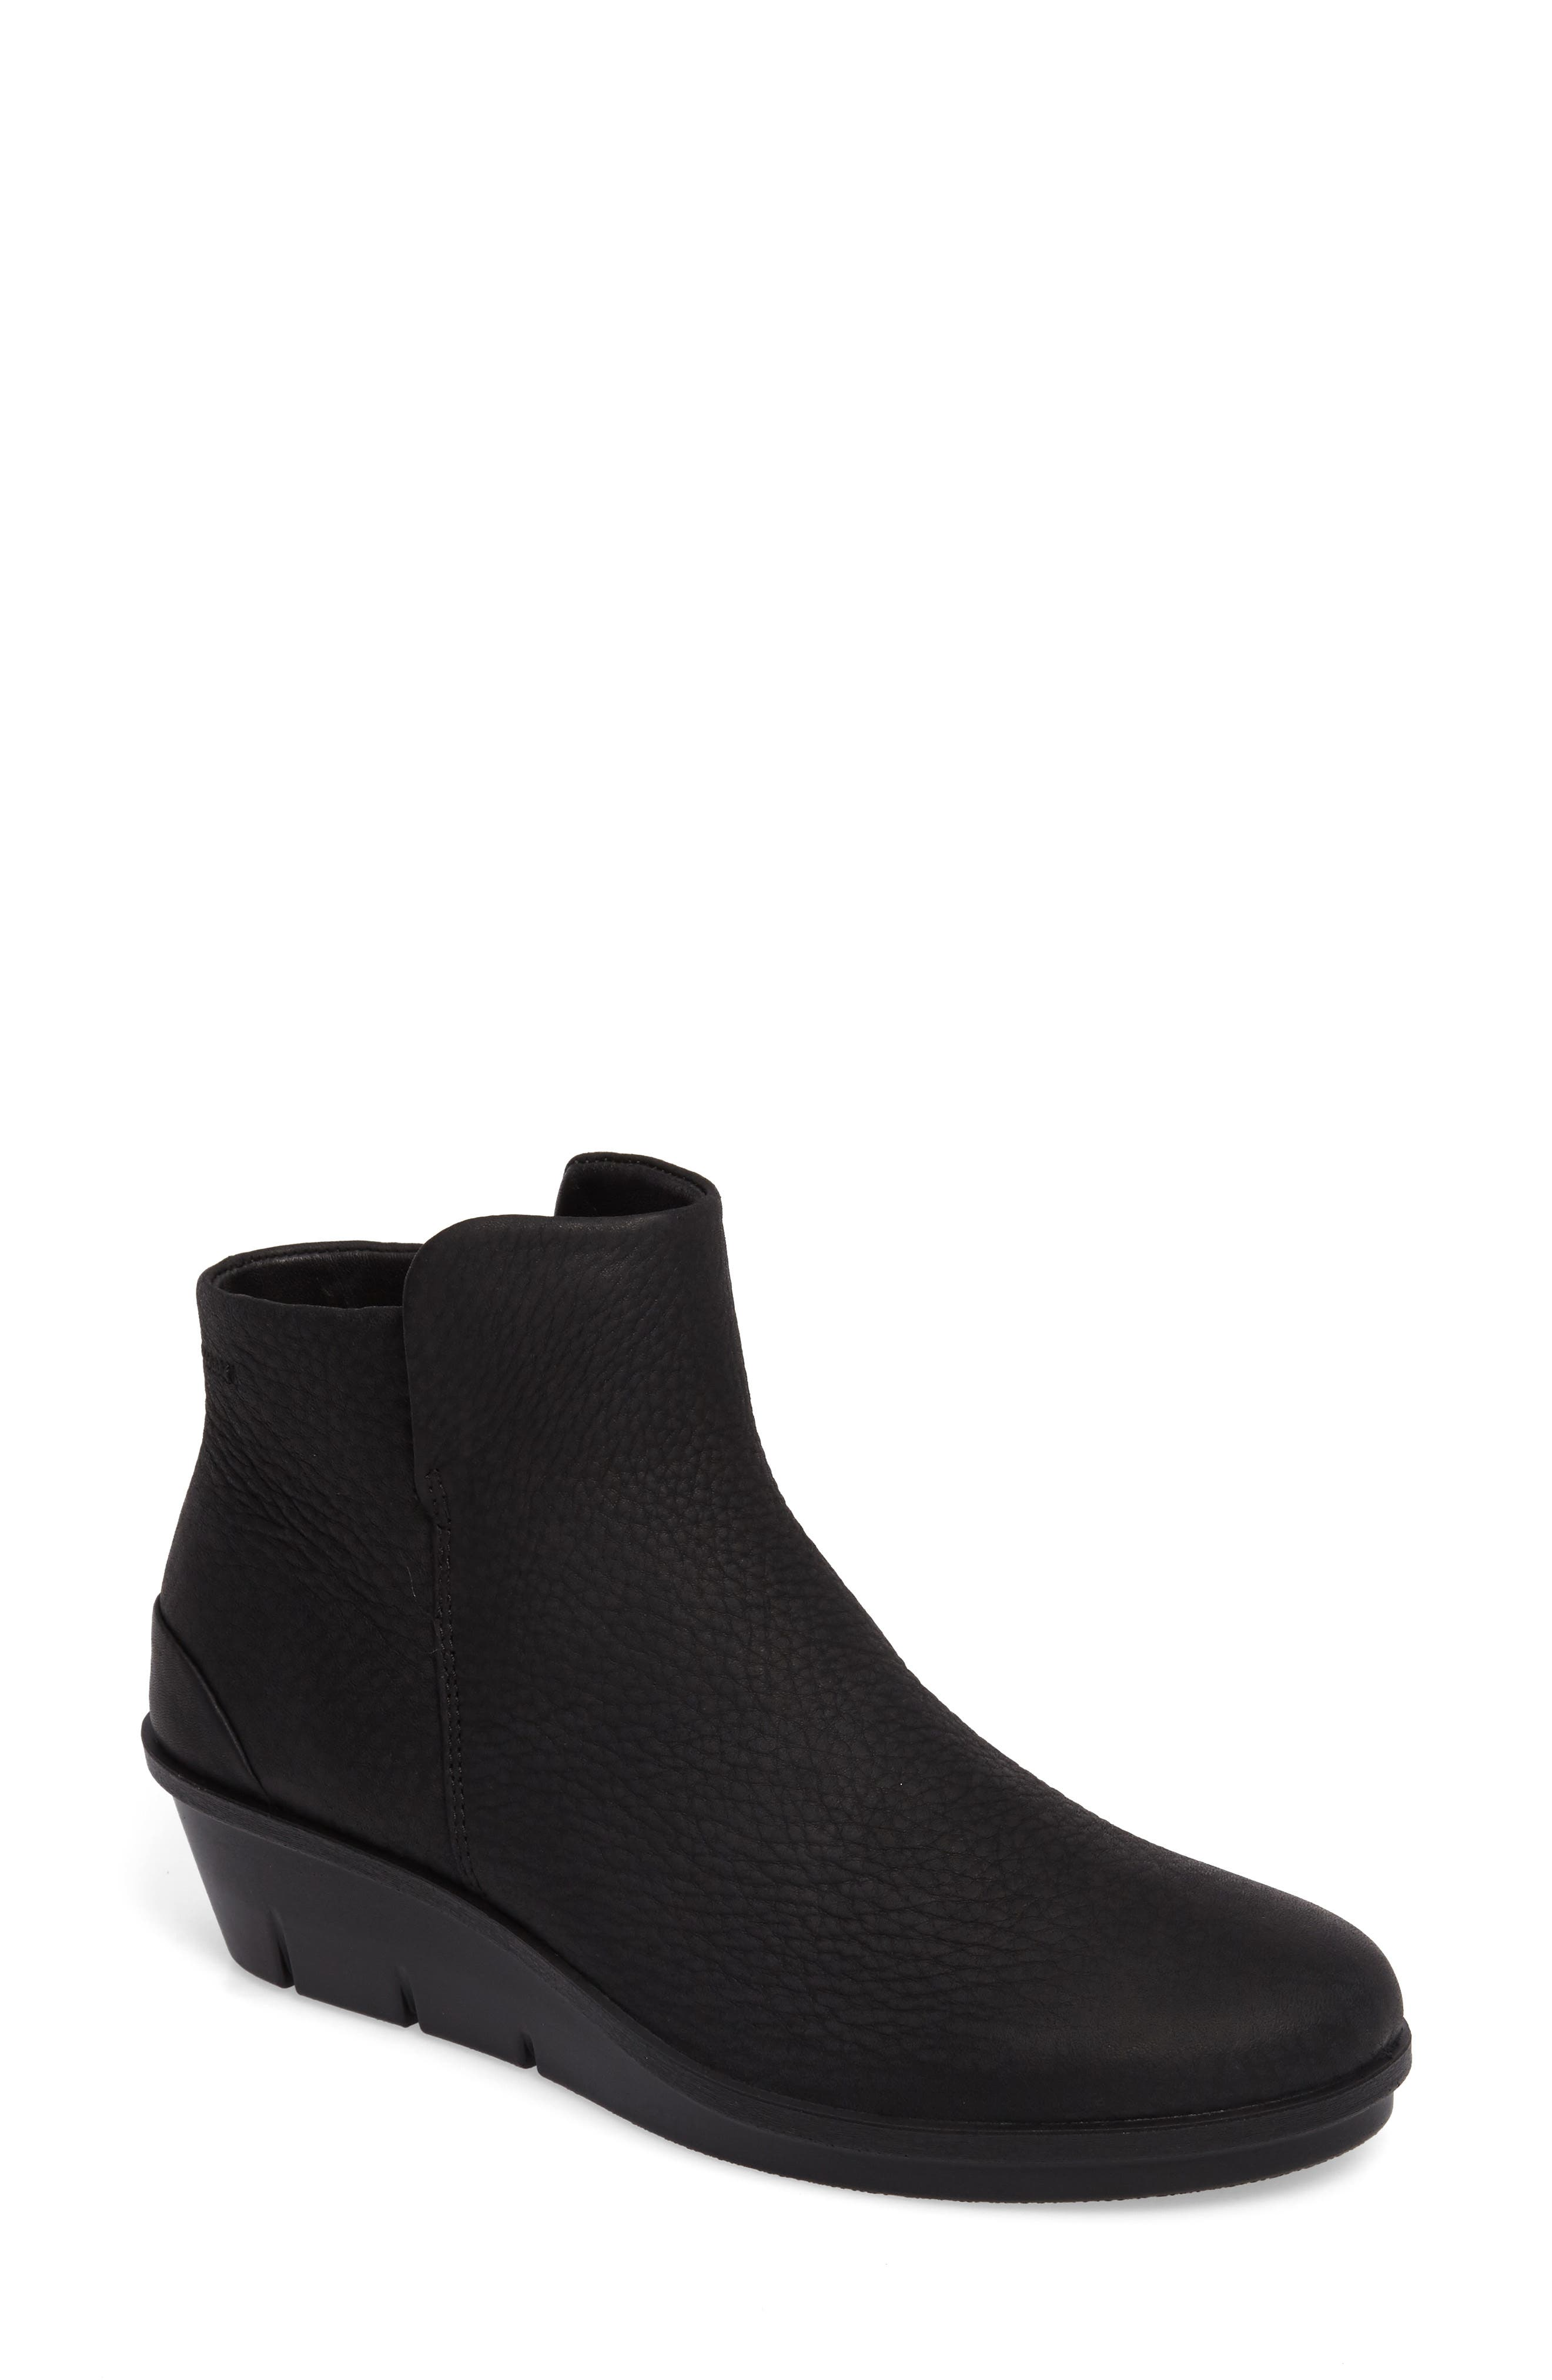 Skyler Wedge Boot,                         Main,                         color, BLACK LEATHER